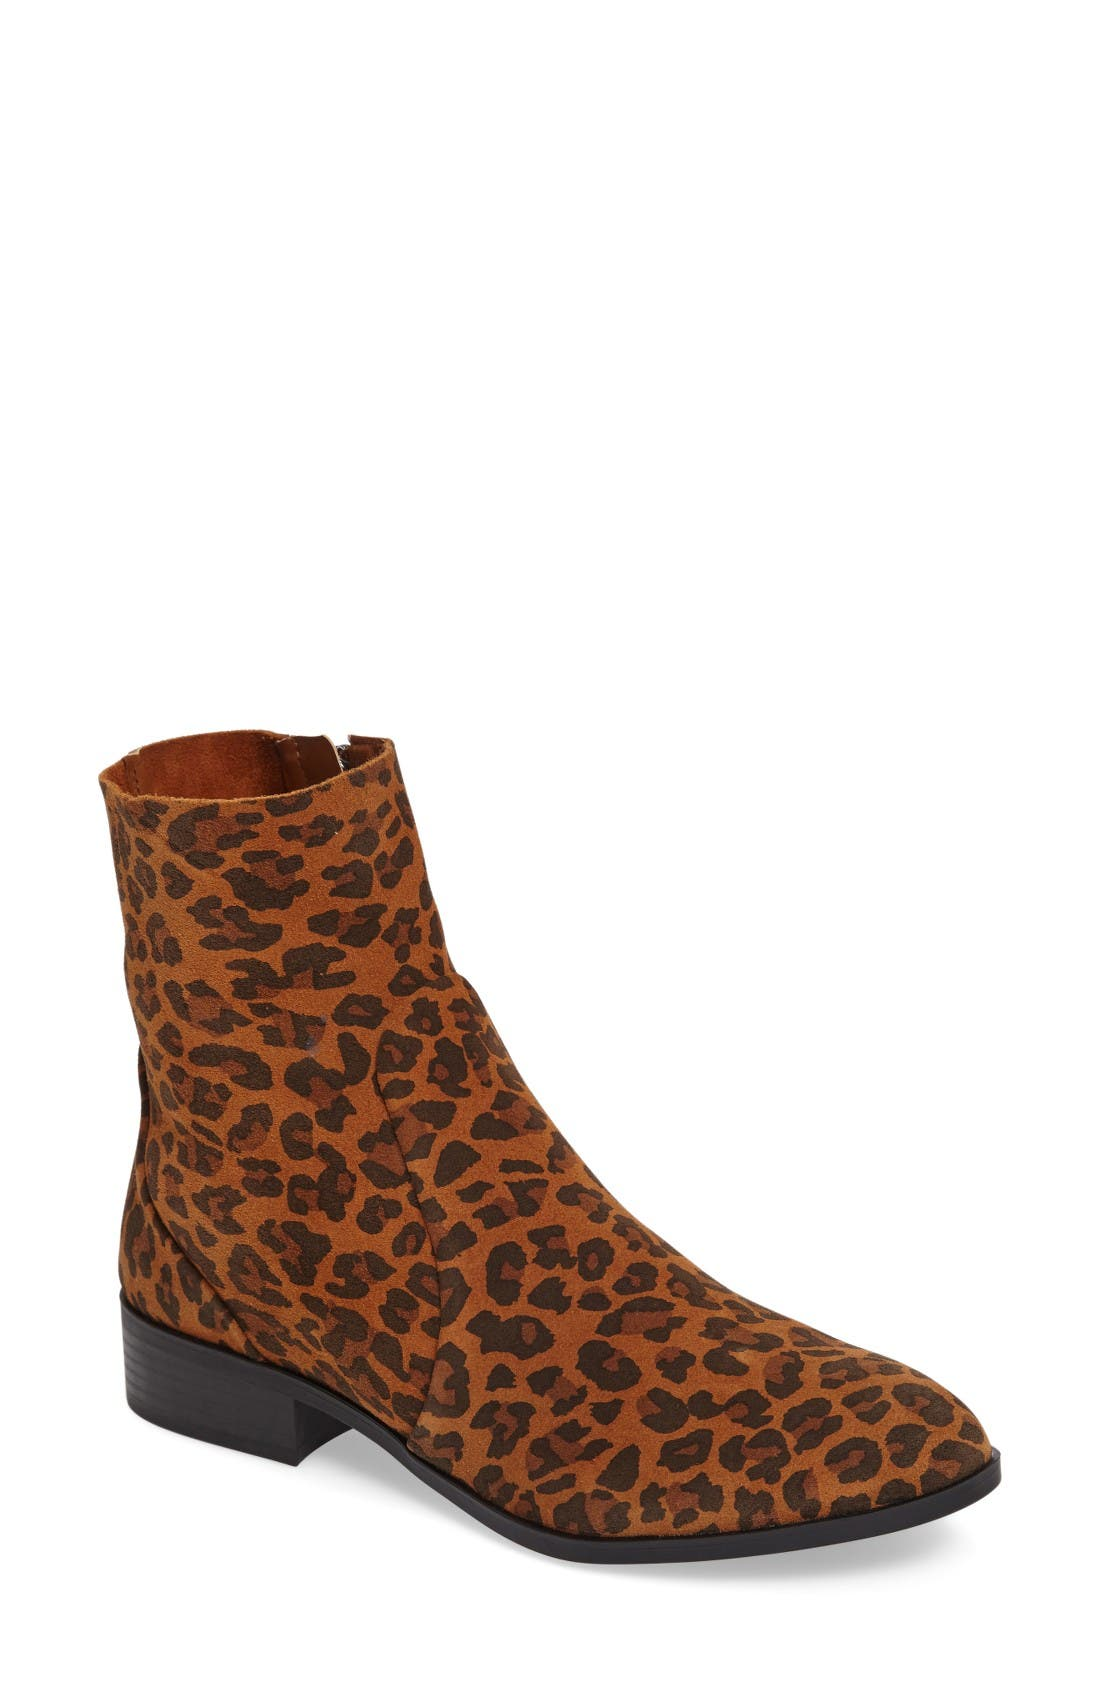 Alternate Image 1 Selected - Topshop Klash Boot (Women)